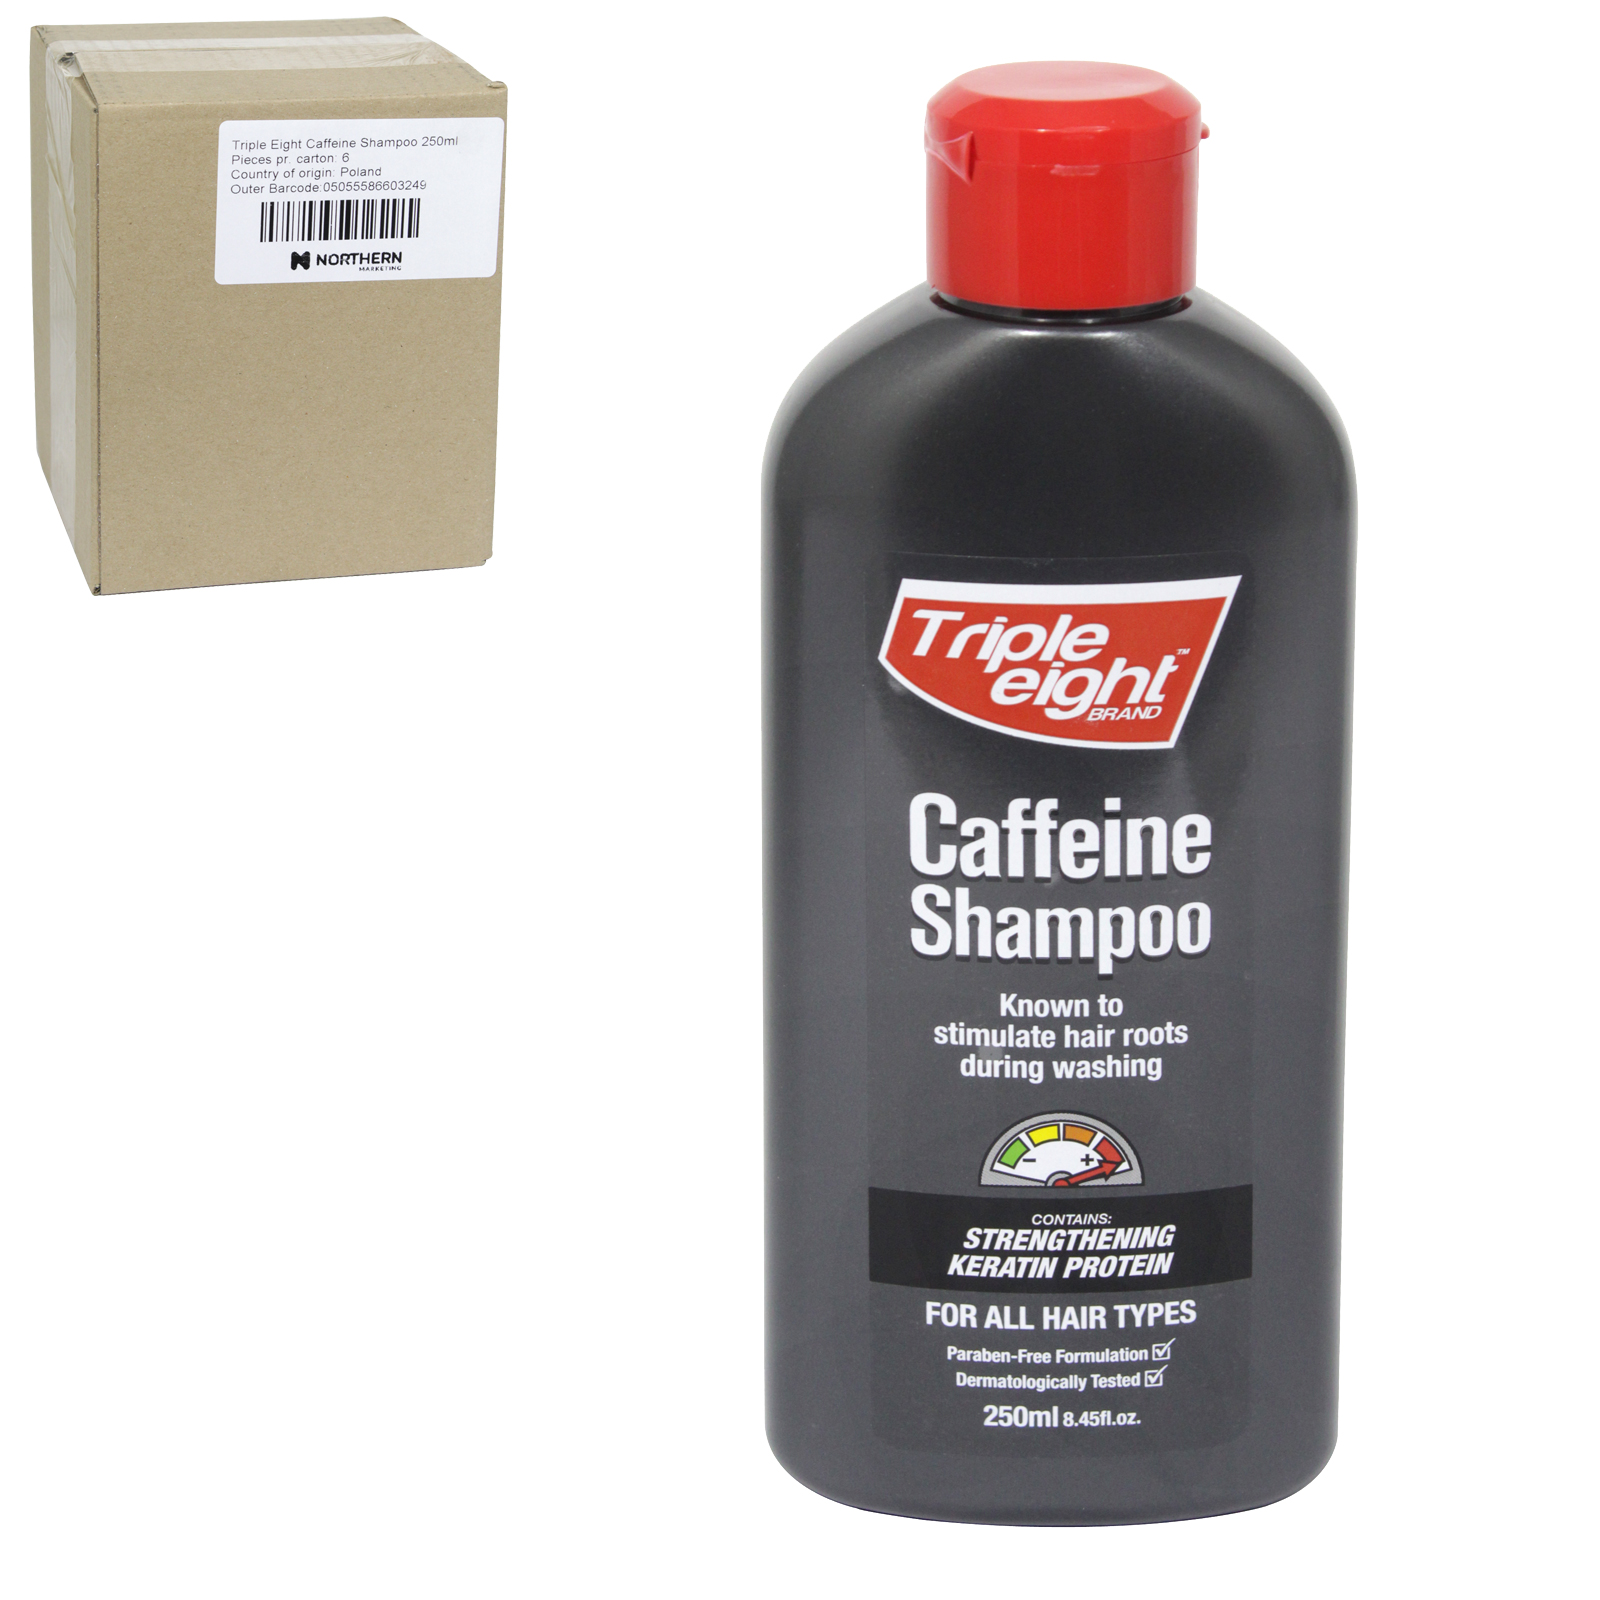 TRIPLE EIGHT CAFFEINE SHAMPOO 250ML X6